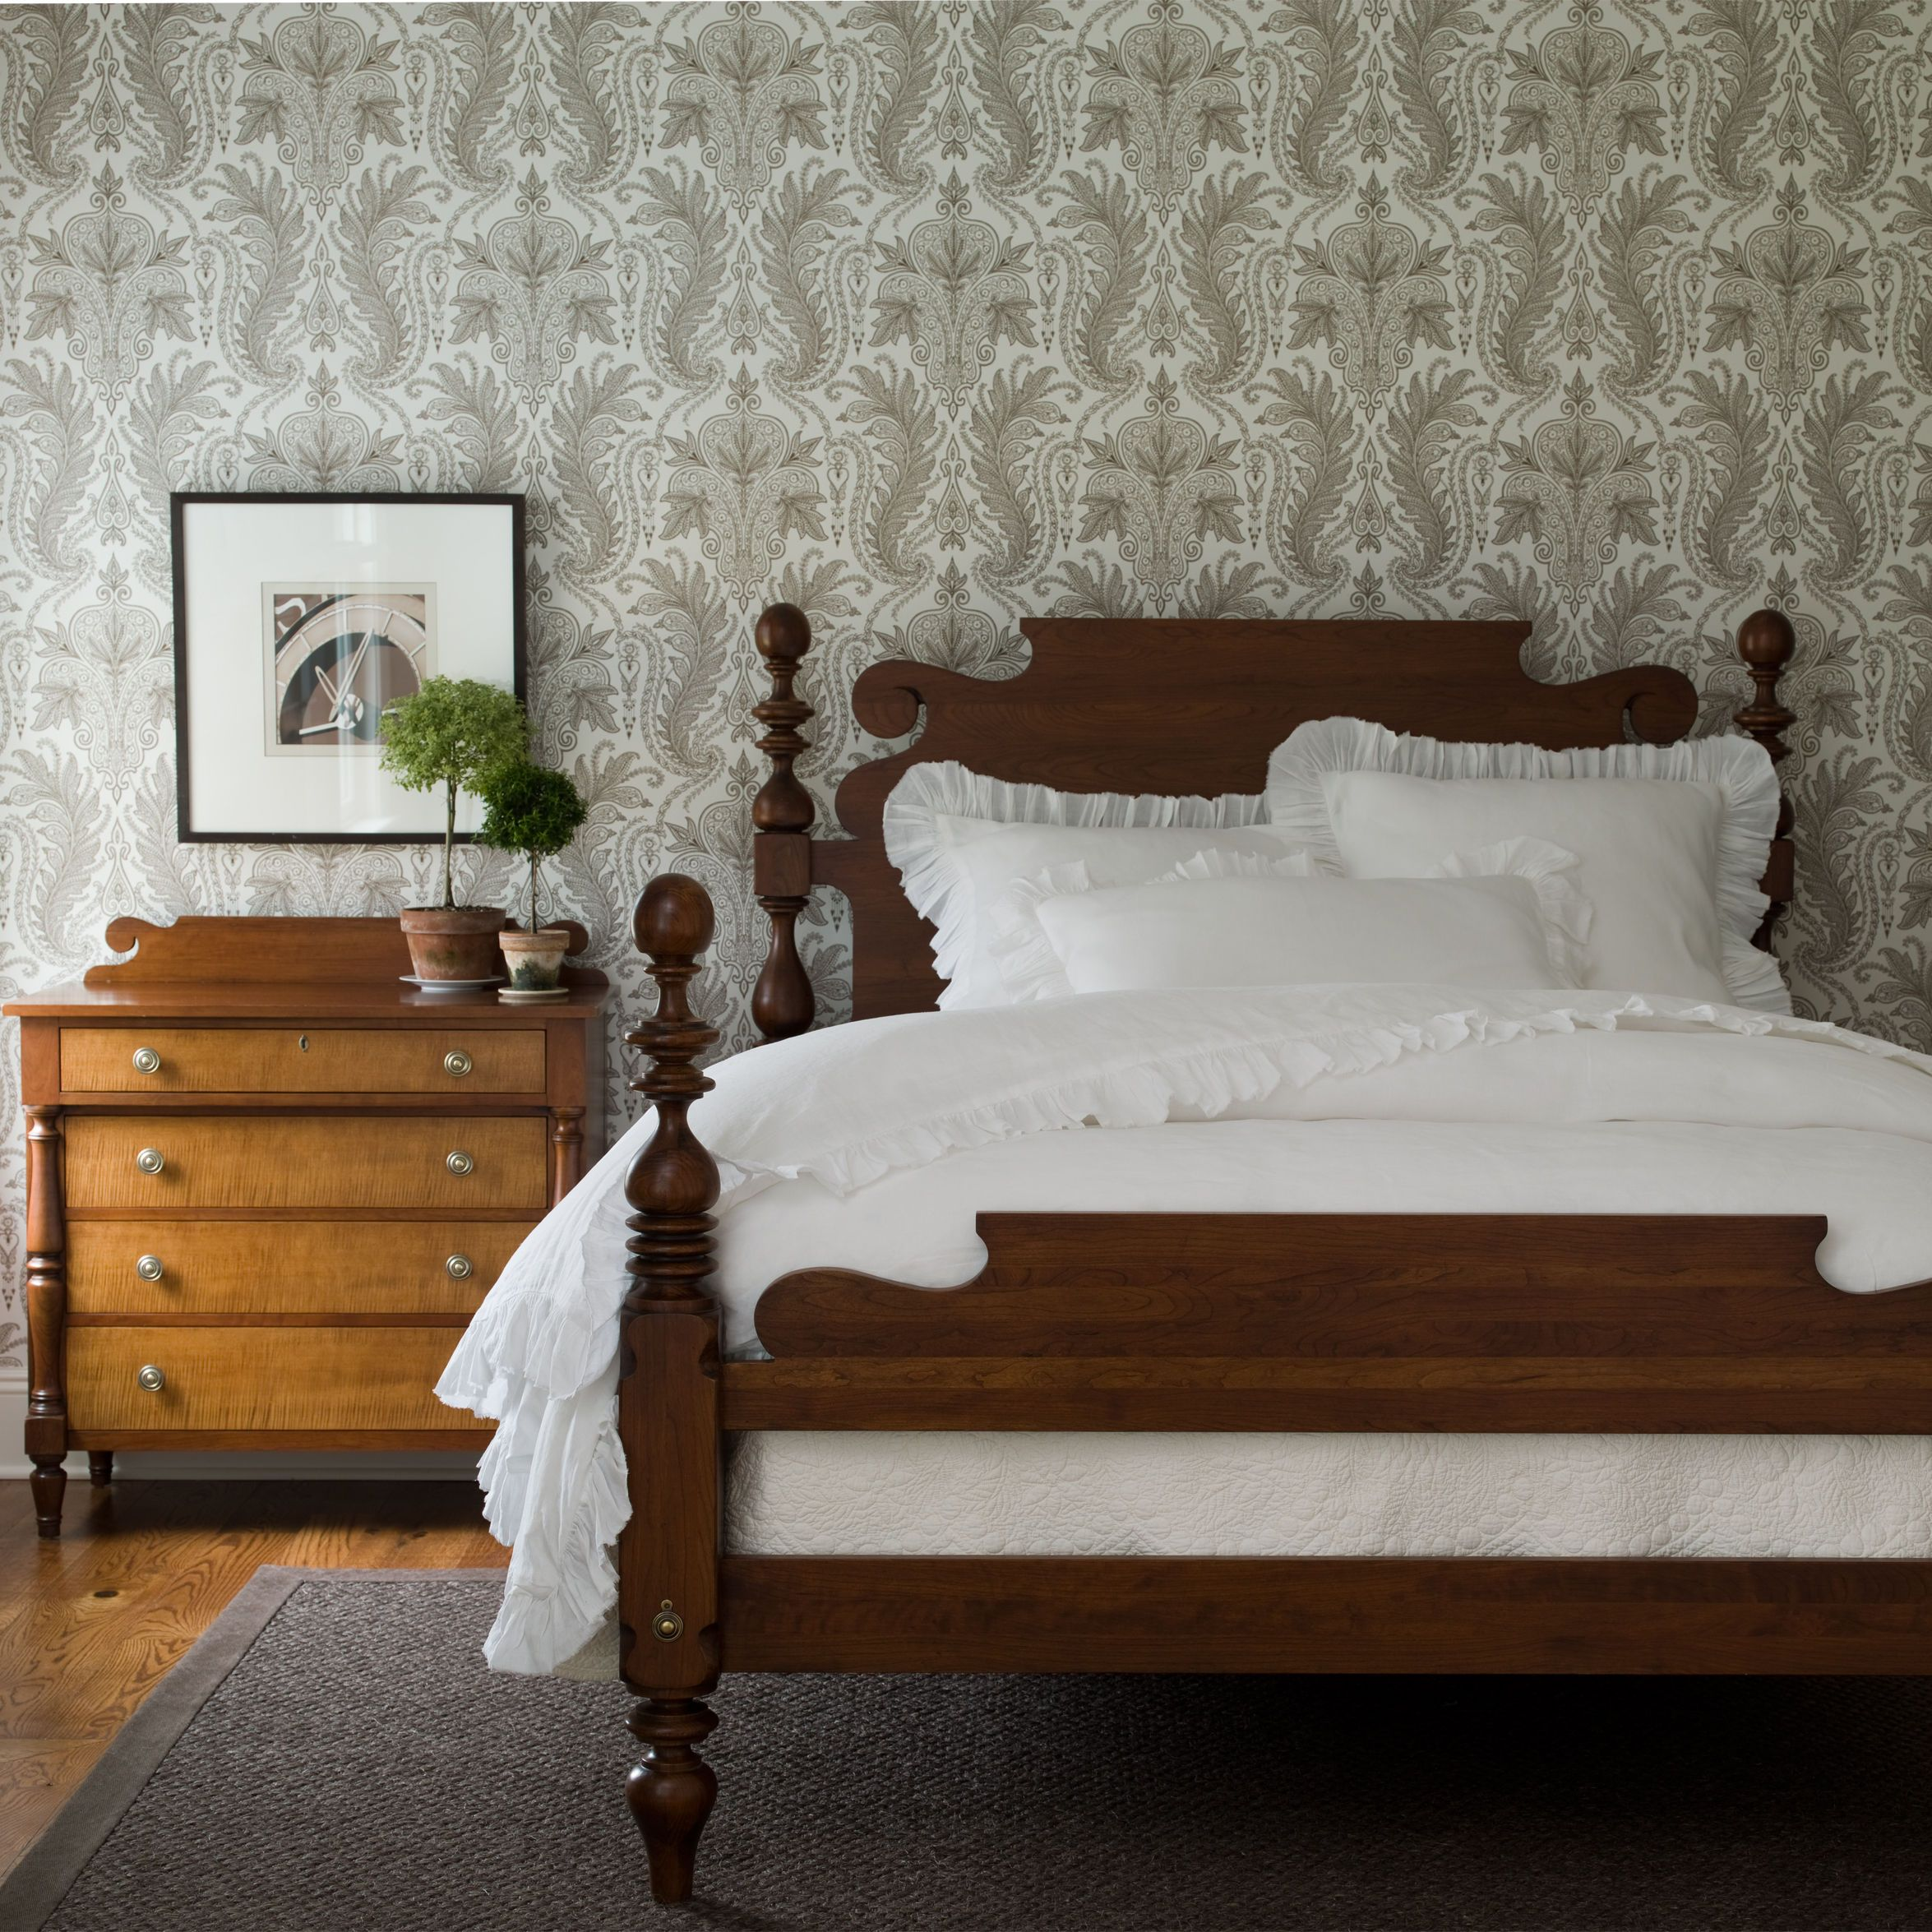 Quincy bed ethan allen us guest room bed the va house bedroom bed cannonball bed for Ethan allen country french bedroom